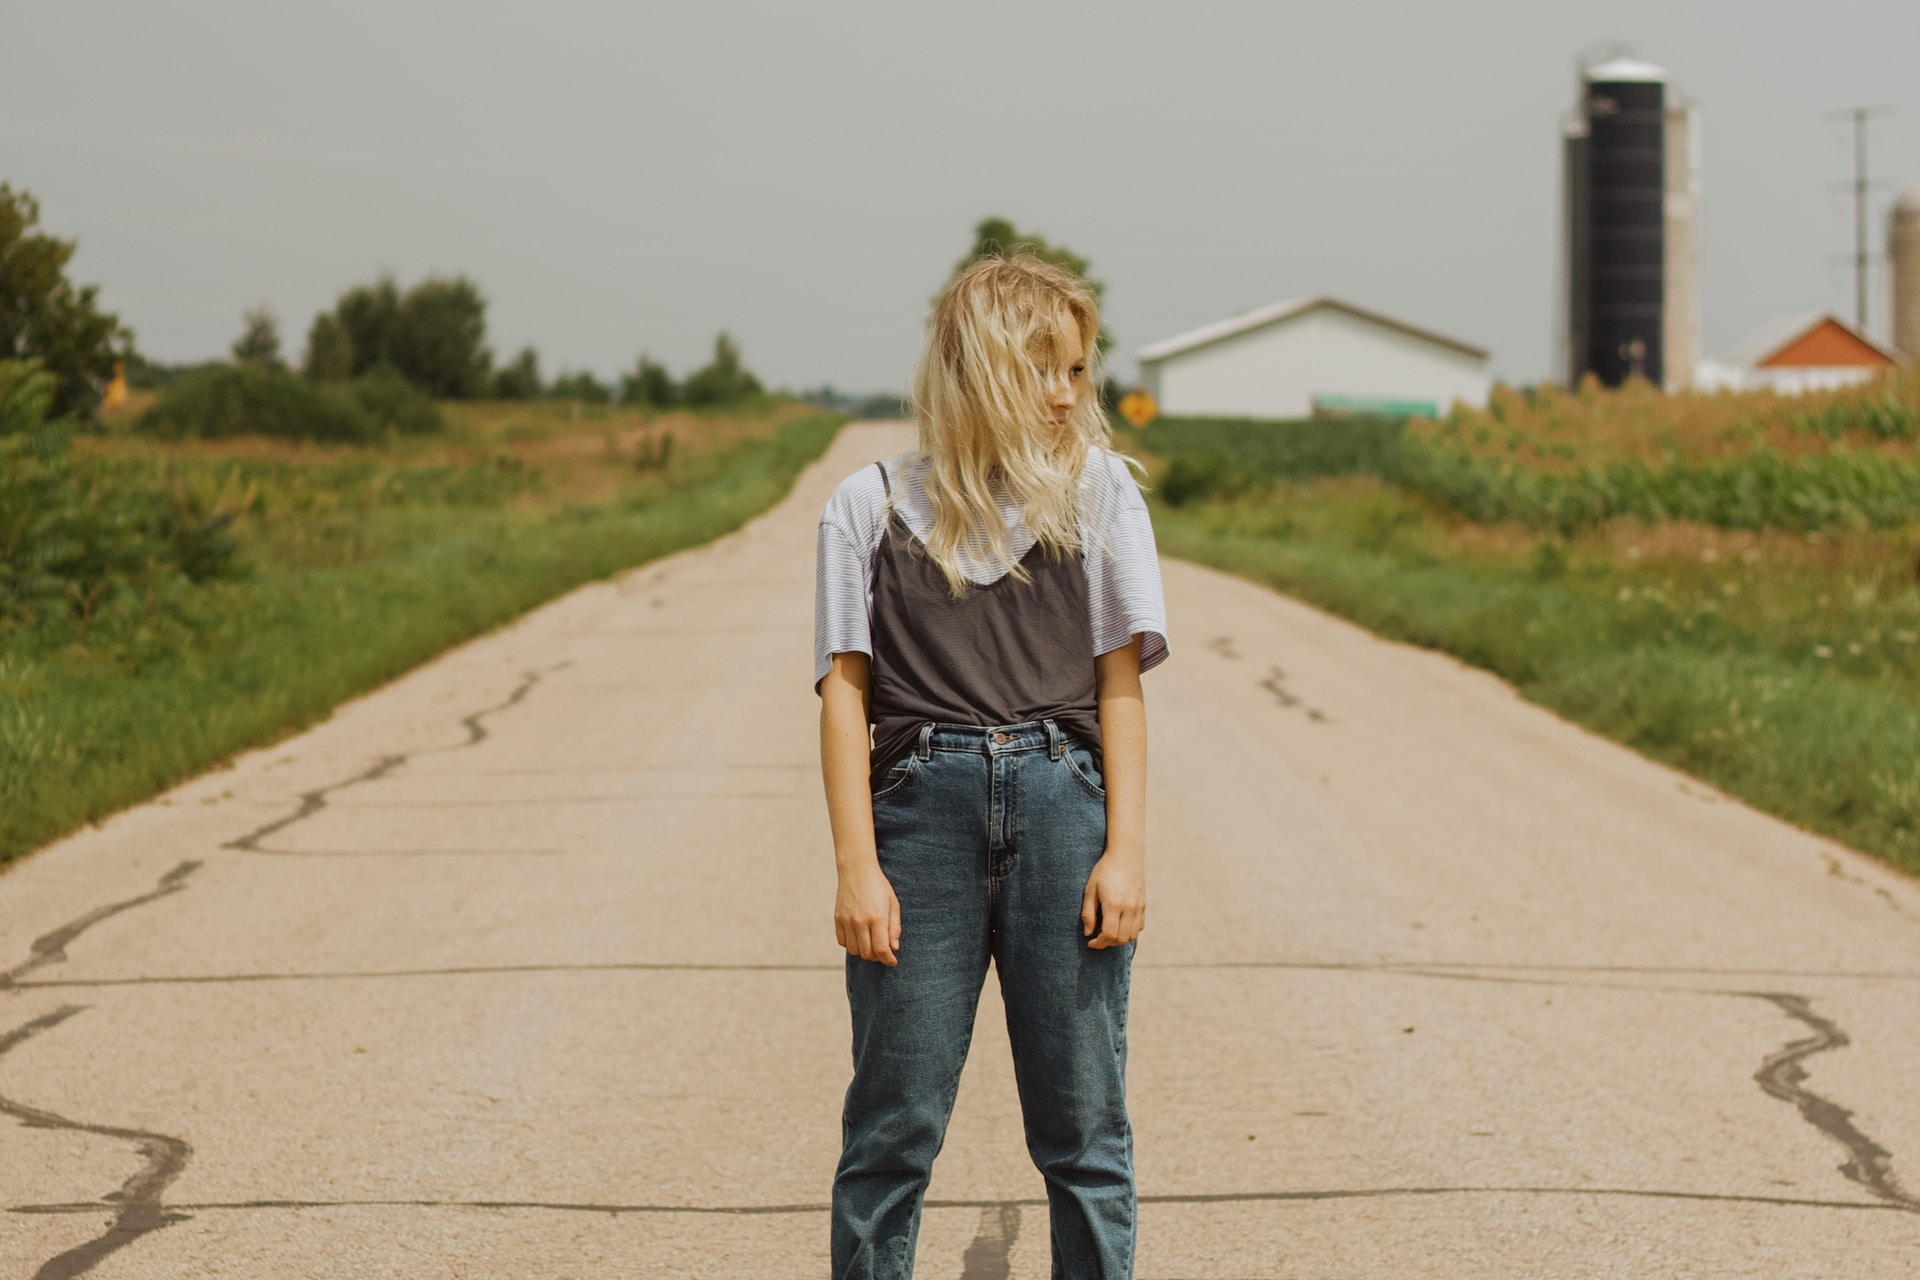 woman in white t-shirt and blue denim jeans walking on gray concrete road during daytime